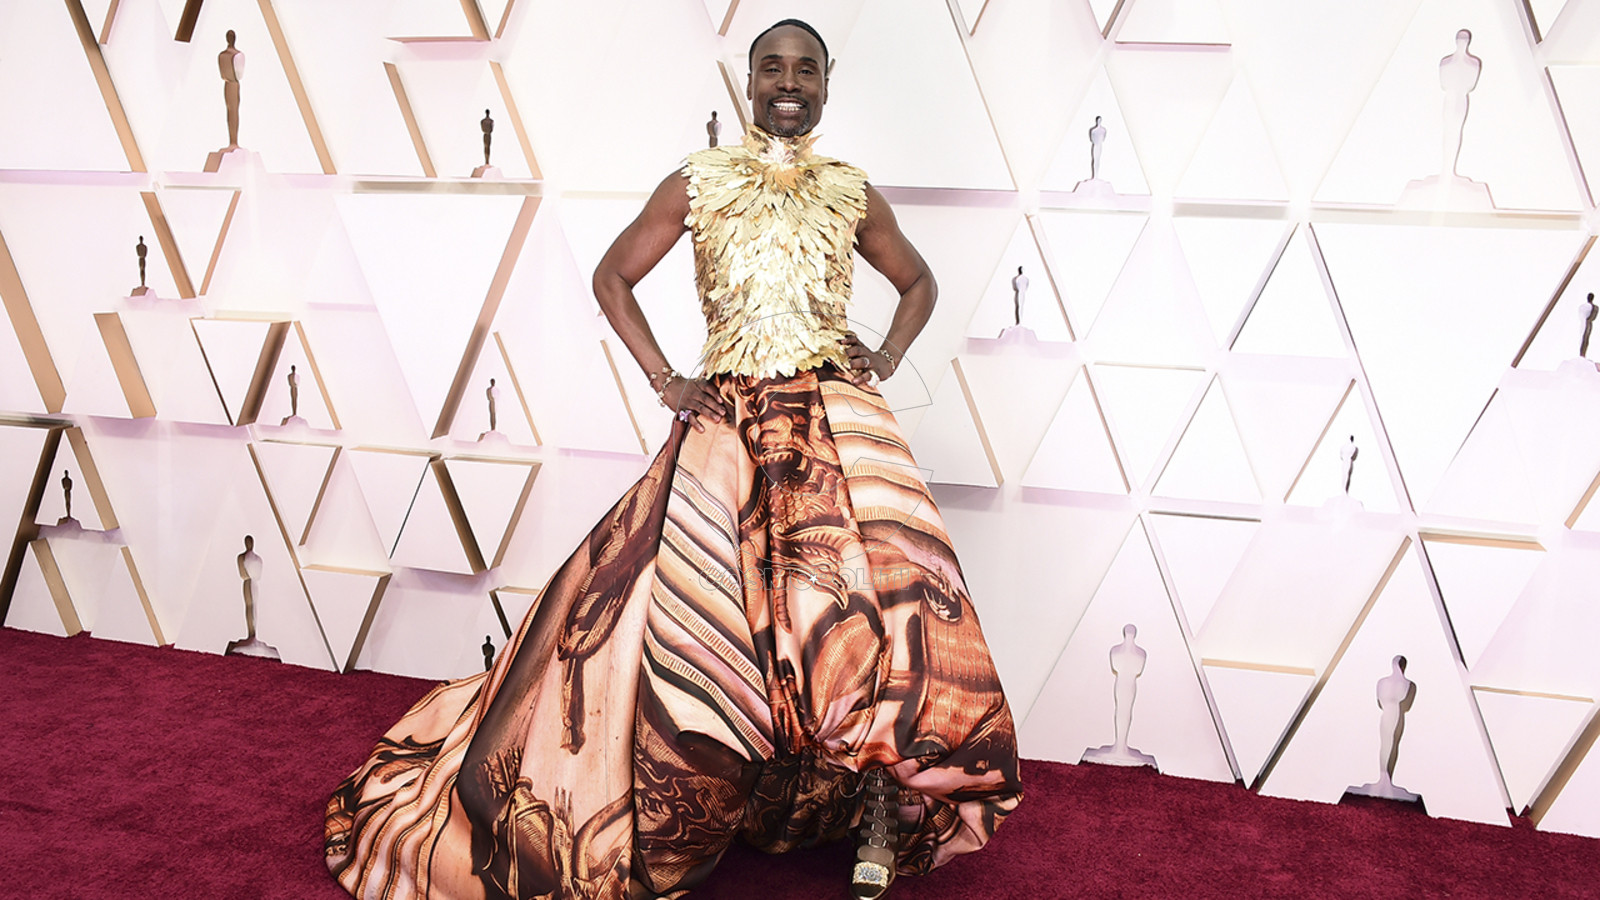 Billy Porter arrives at the Oscars on Sunday, Feb. 9, 2020, at the Dolby Theatre in Los Angeles. (Photo by Jordan Strauss/Invision/AP)